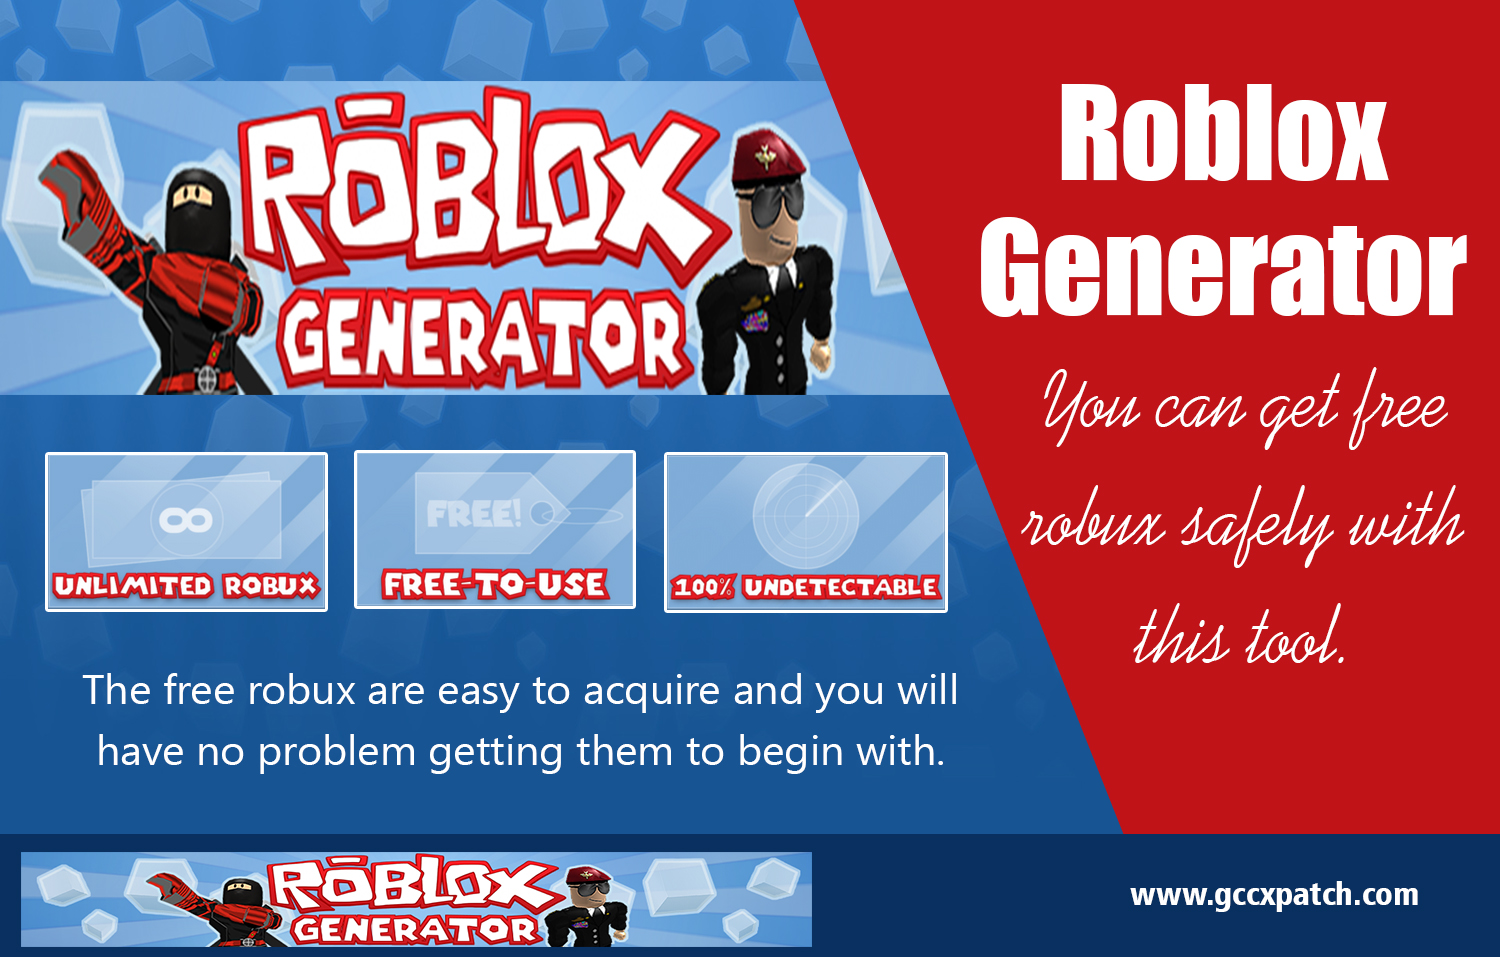 Robux Generator Thinglink